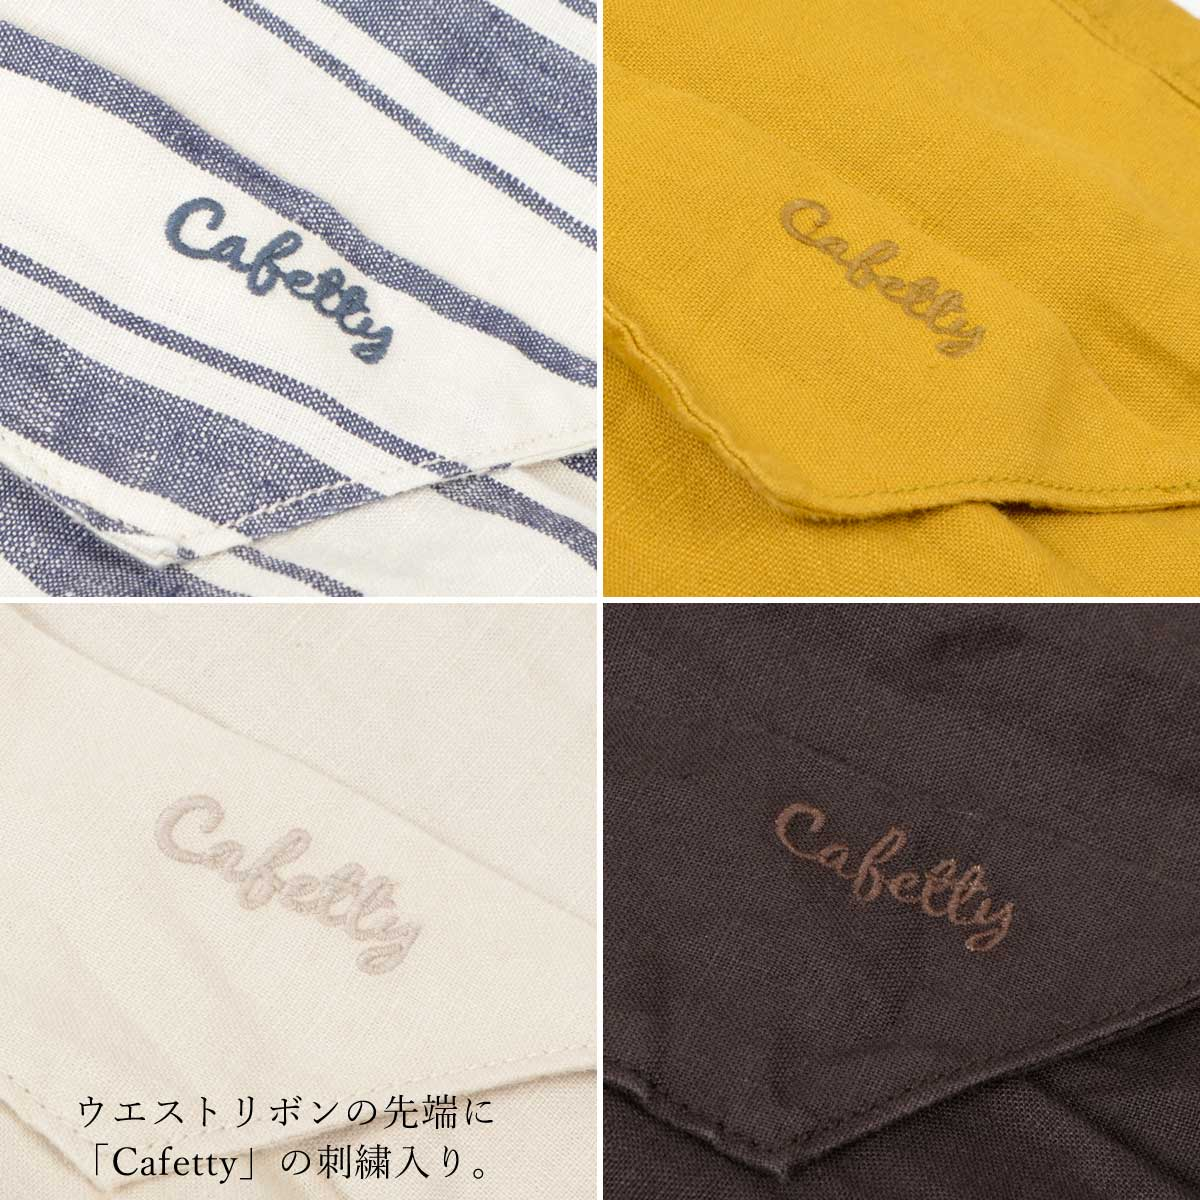 【SALE】Cafetty リネンマキシスカート CF4030